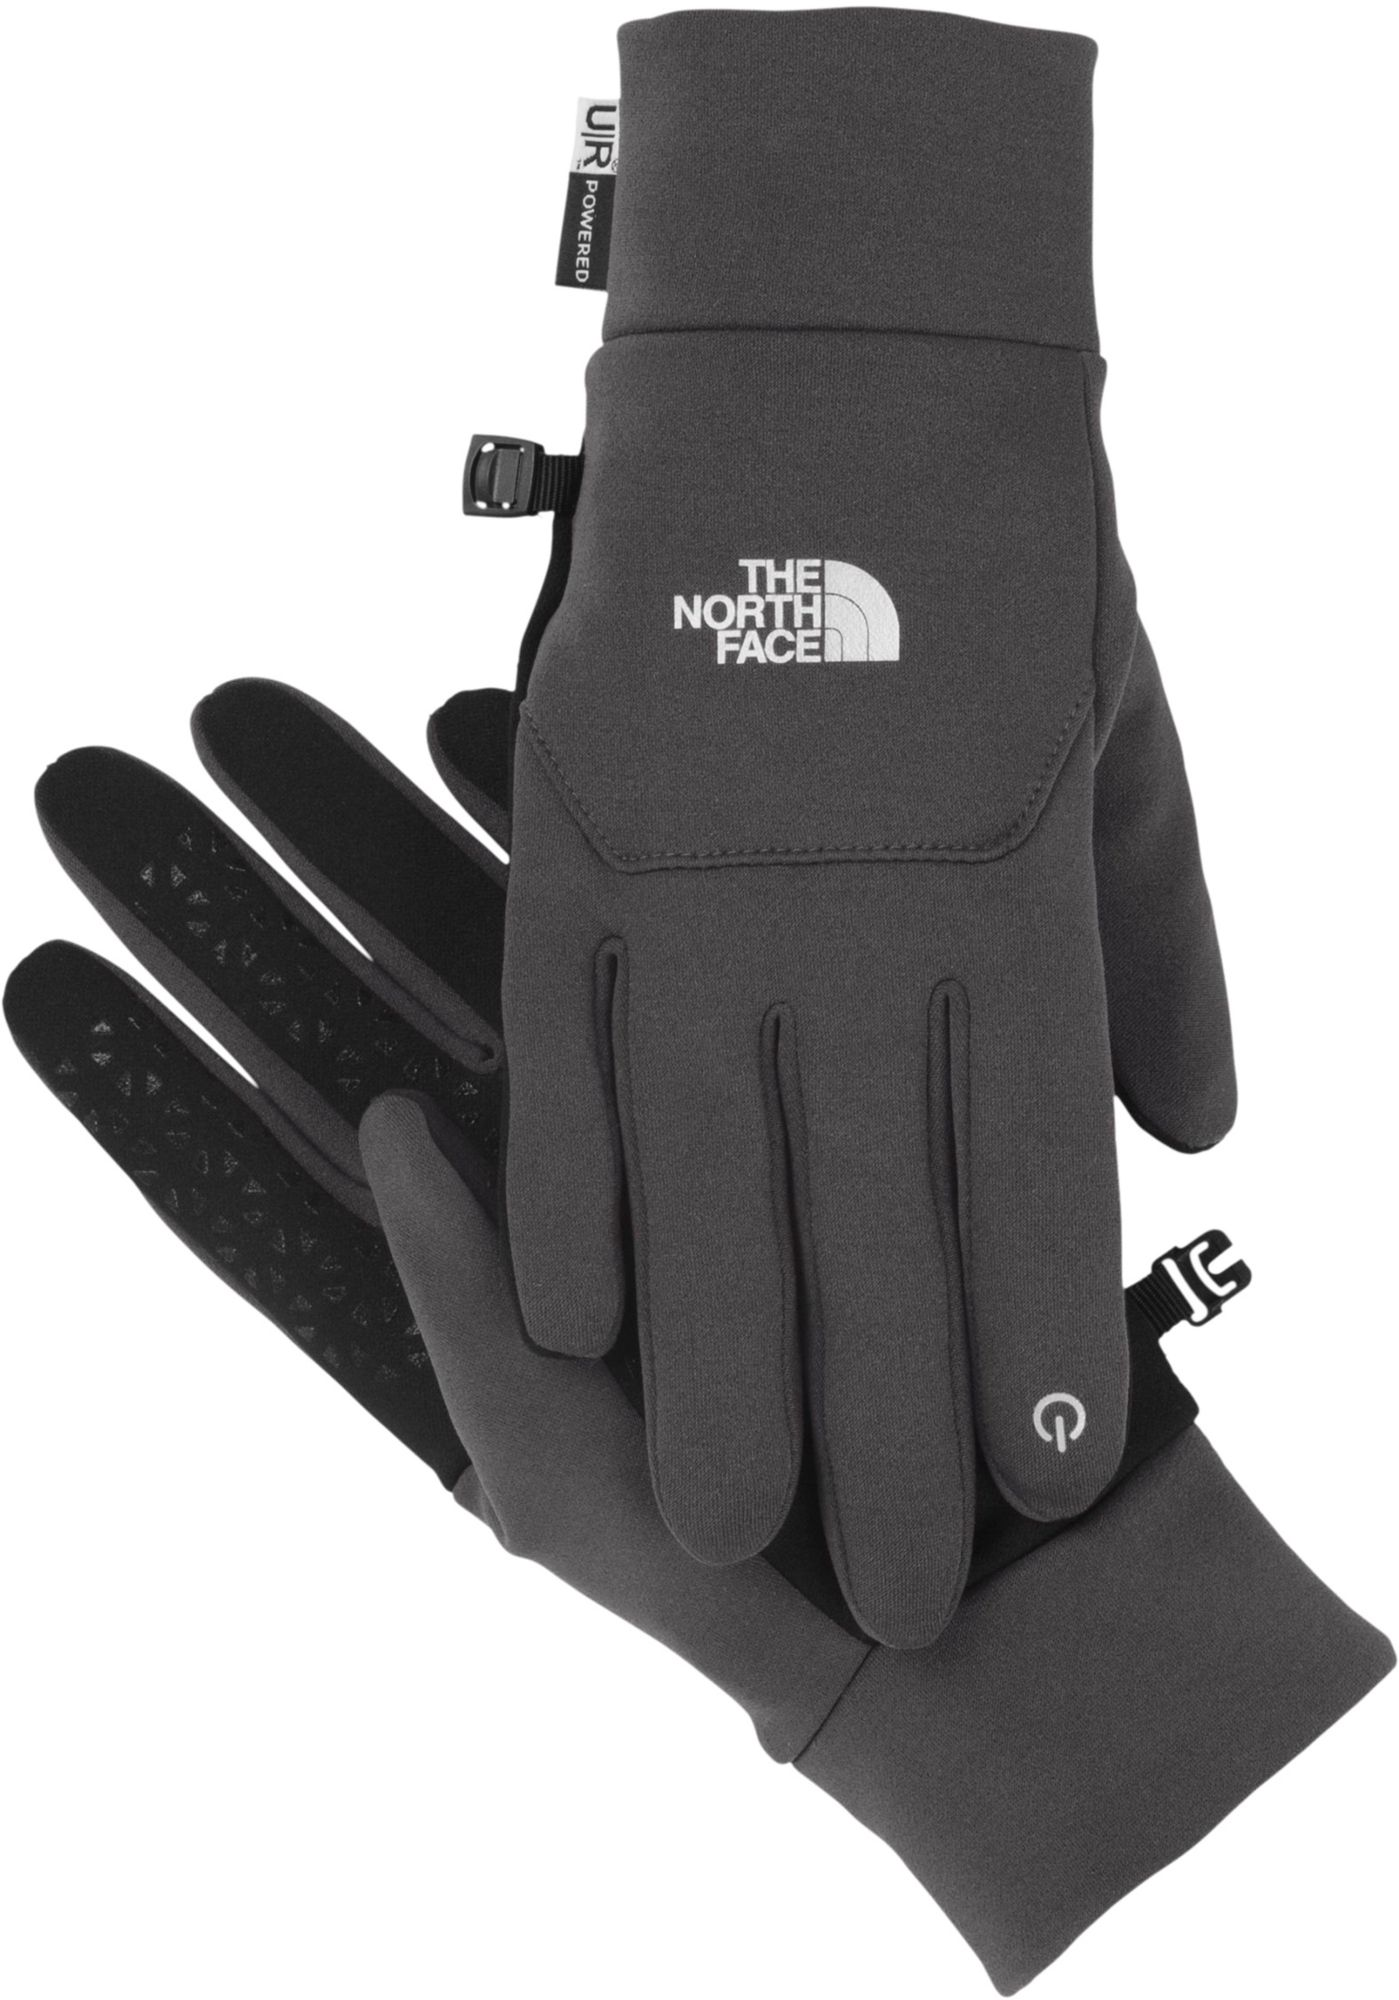 Black gloves mens - Noimagefound